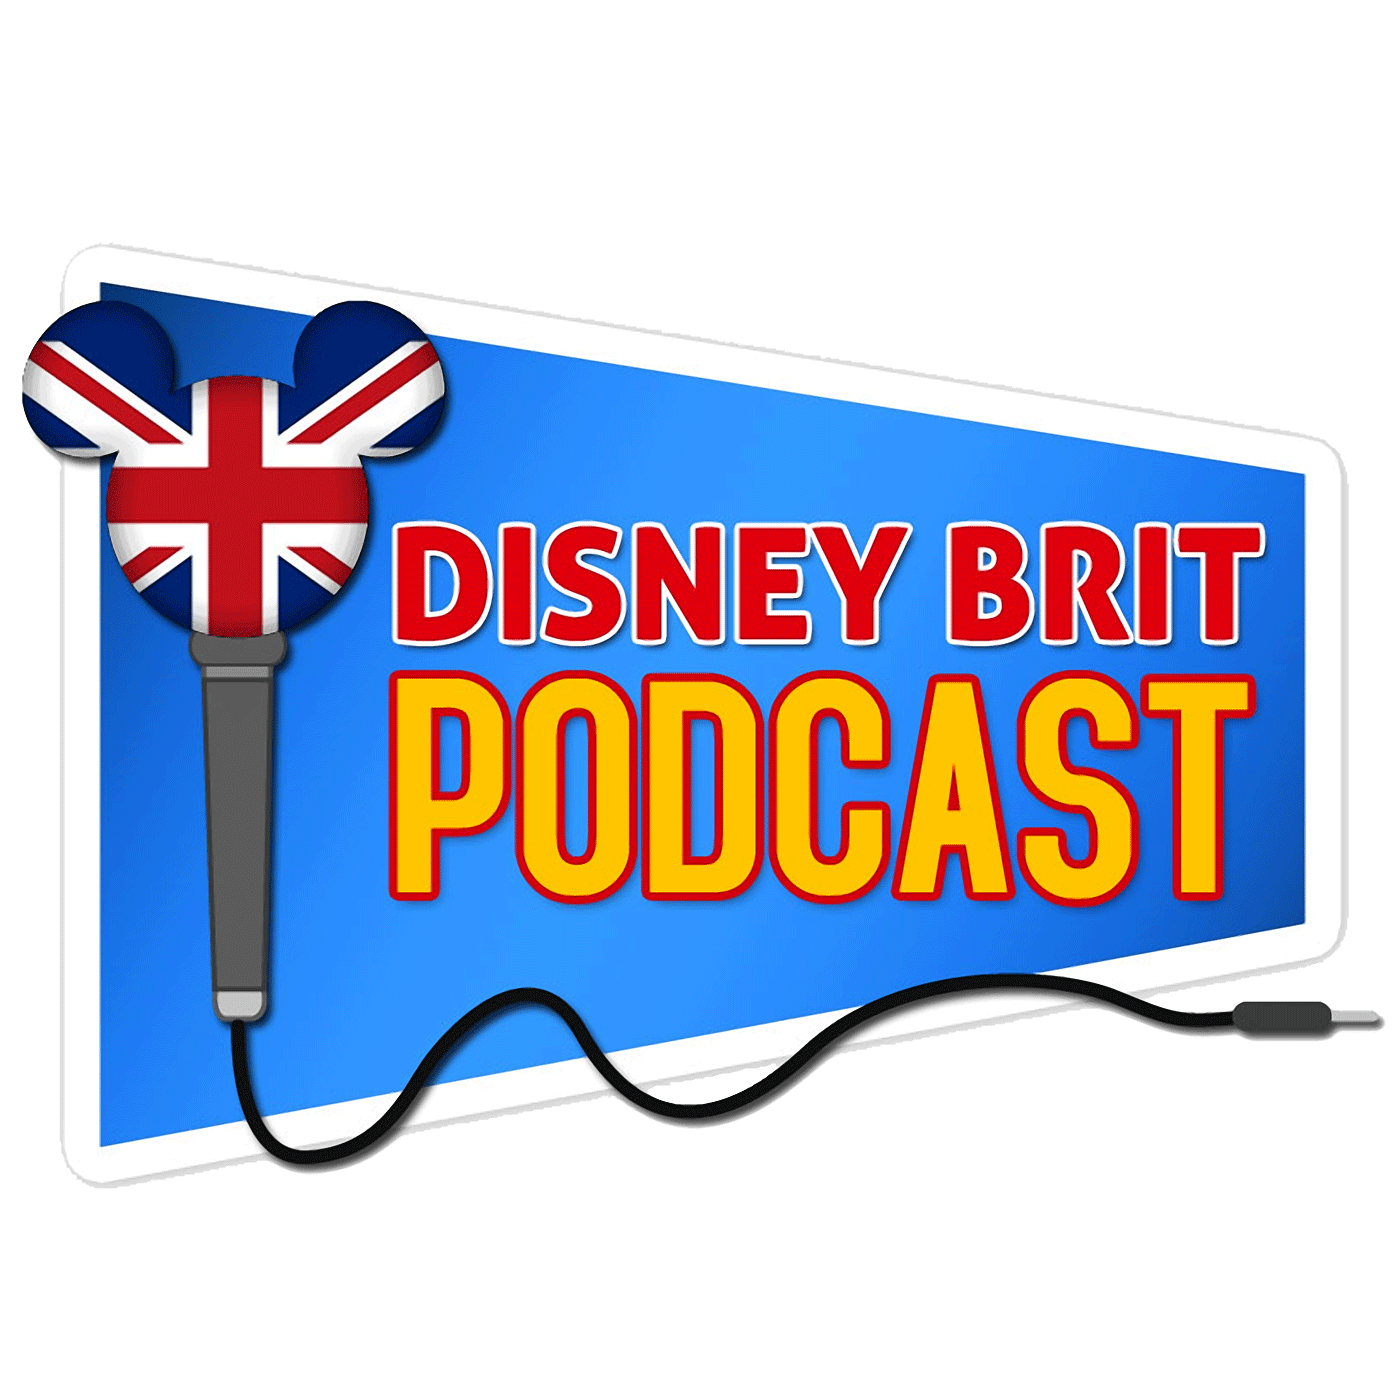 Disneybrit Radio Show 209: A Idiot's Guide to Disneyland Paris